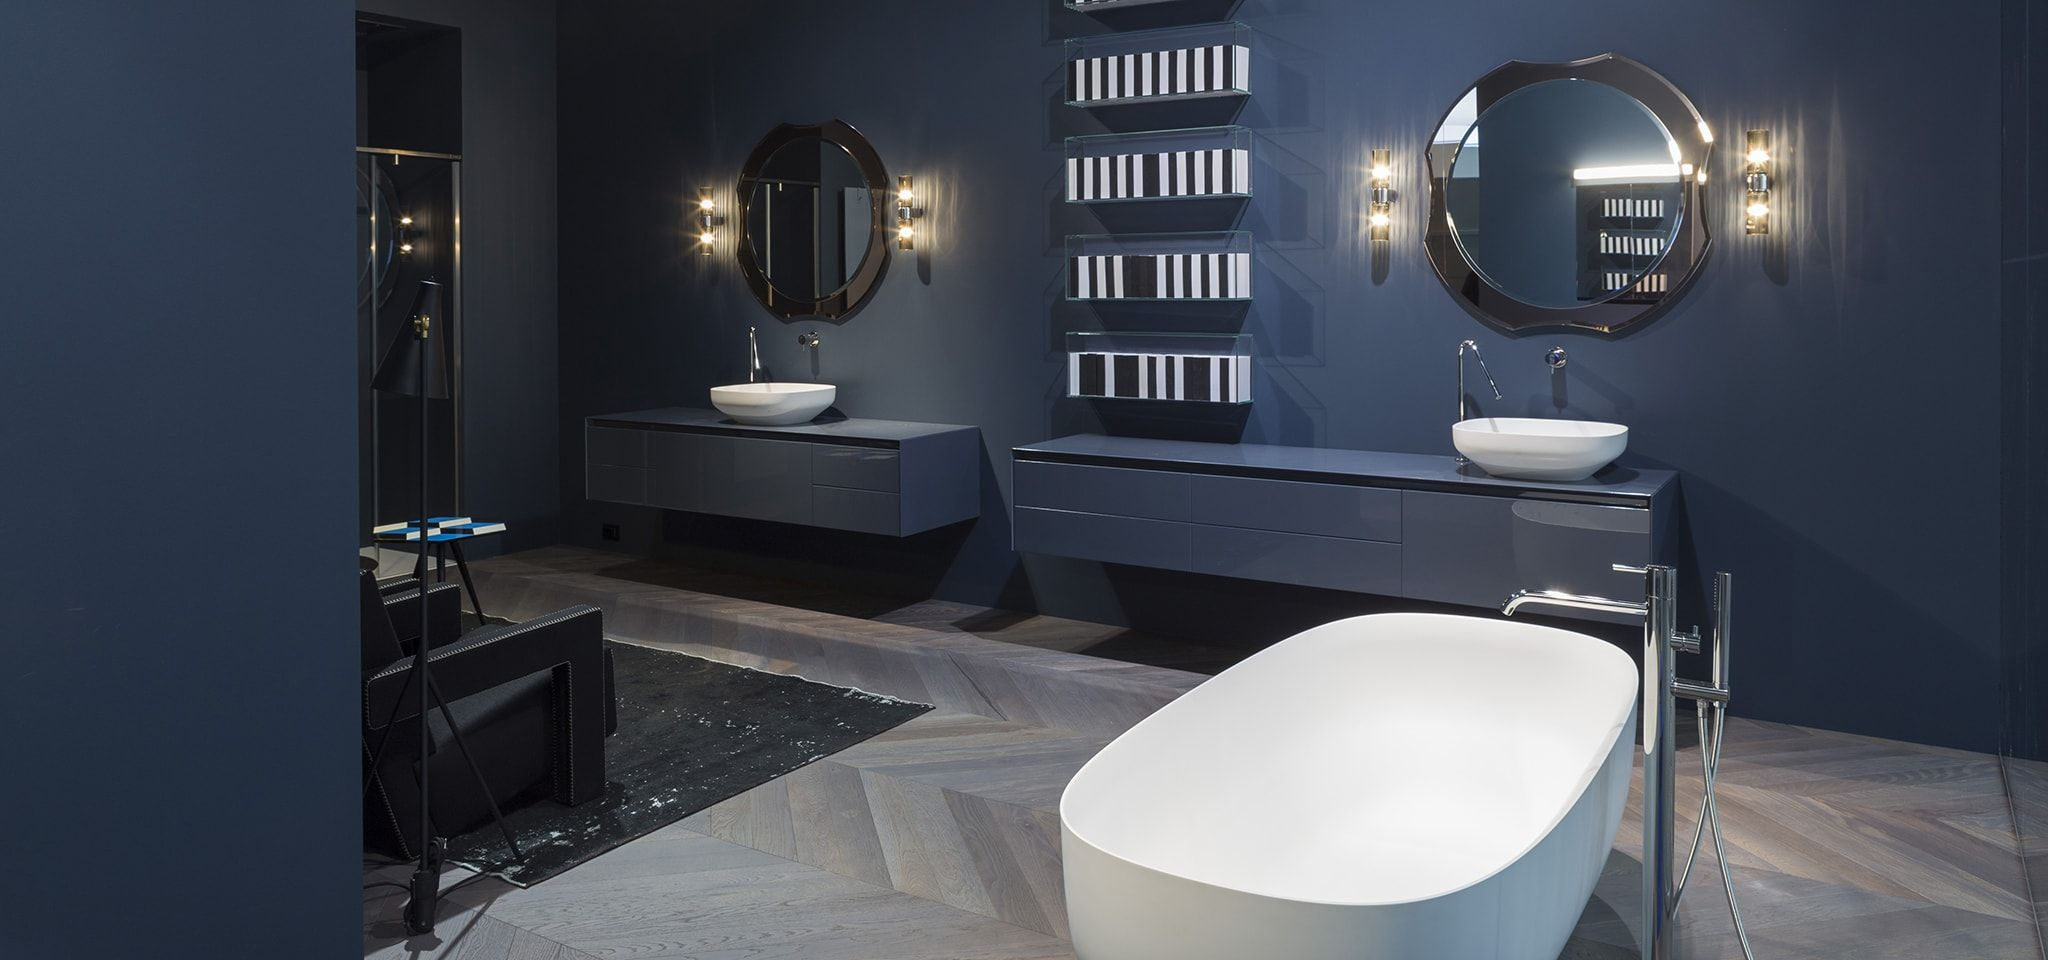 Antonio lupi arredamento e accessori da bagno wc for Accessori arredamento